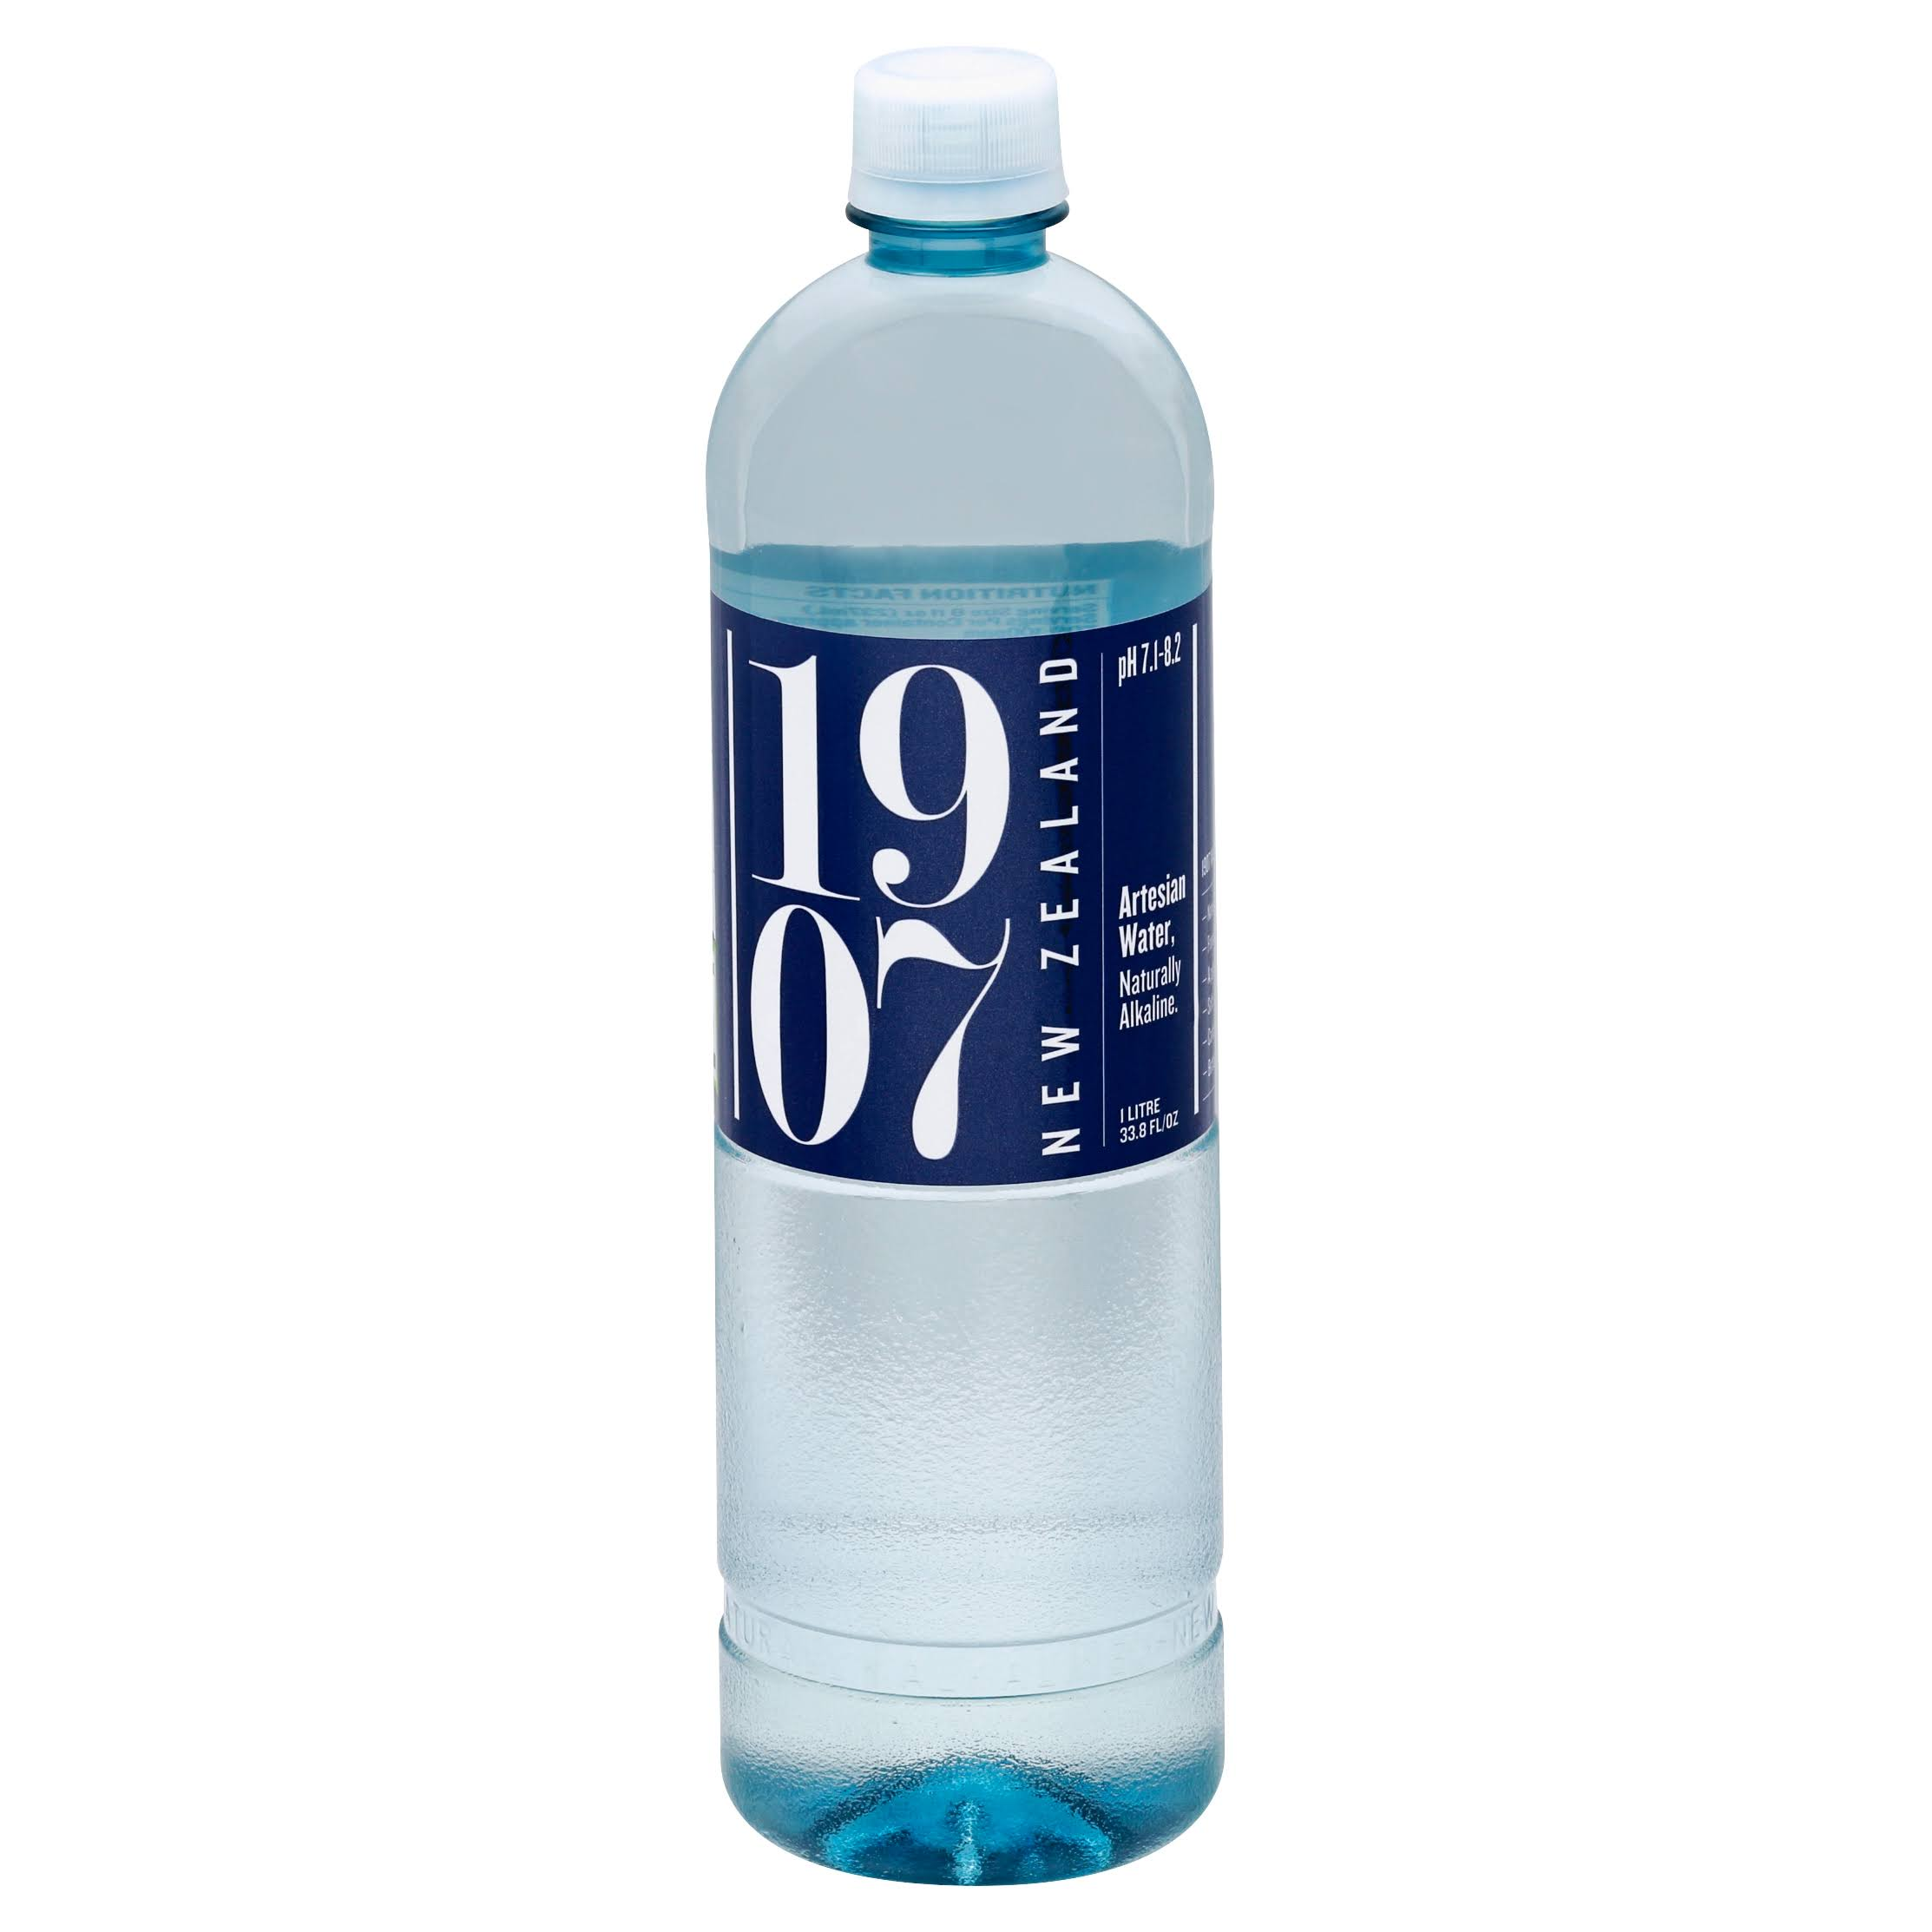 1907 New Zealand Artesian Water - 33.8 fl oz bottle